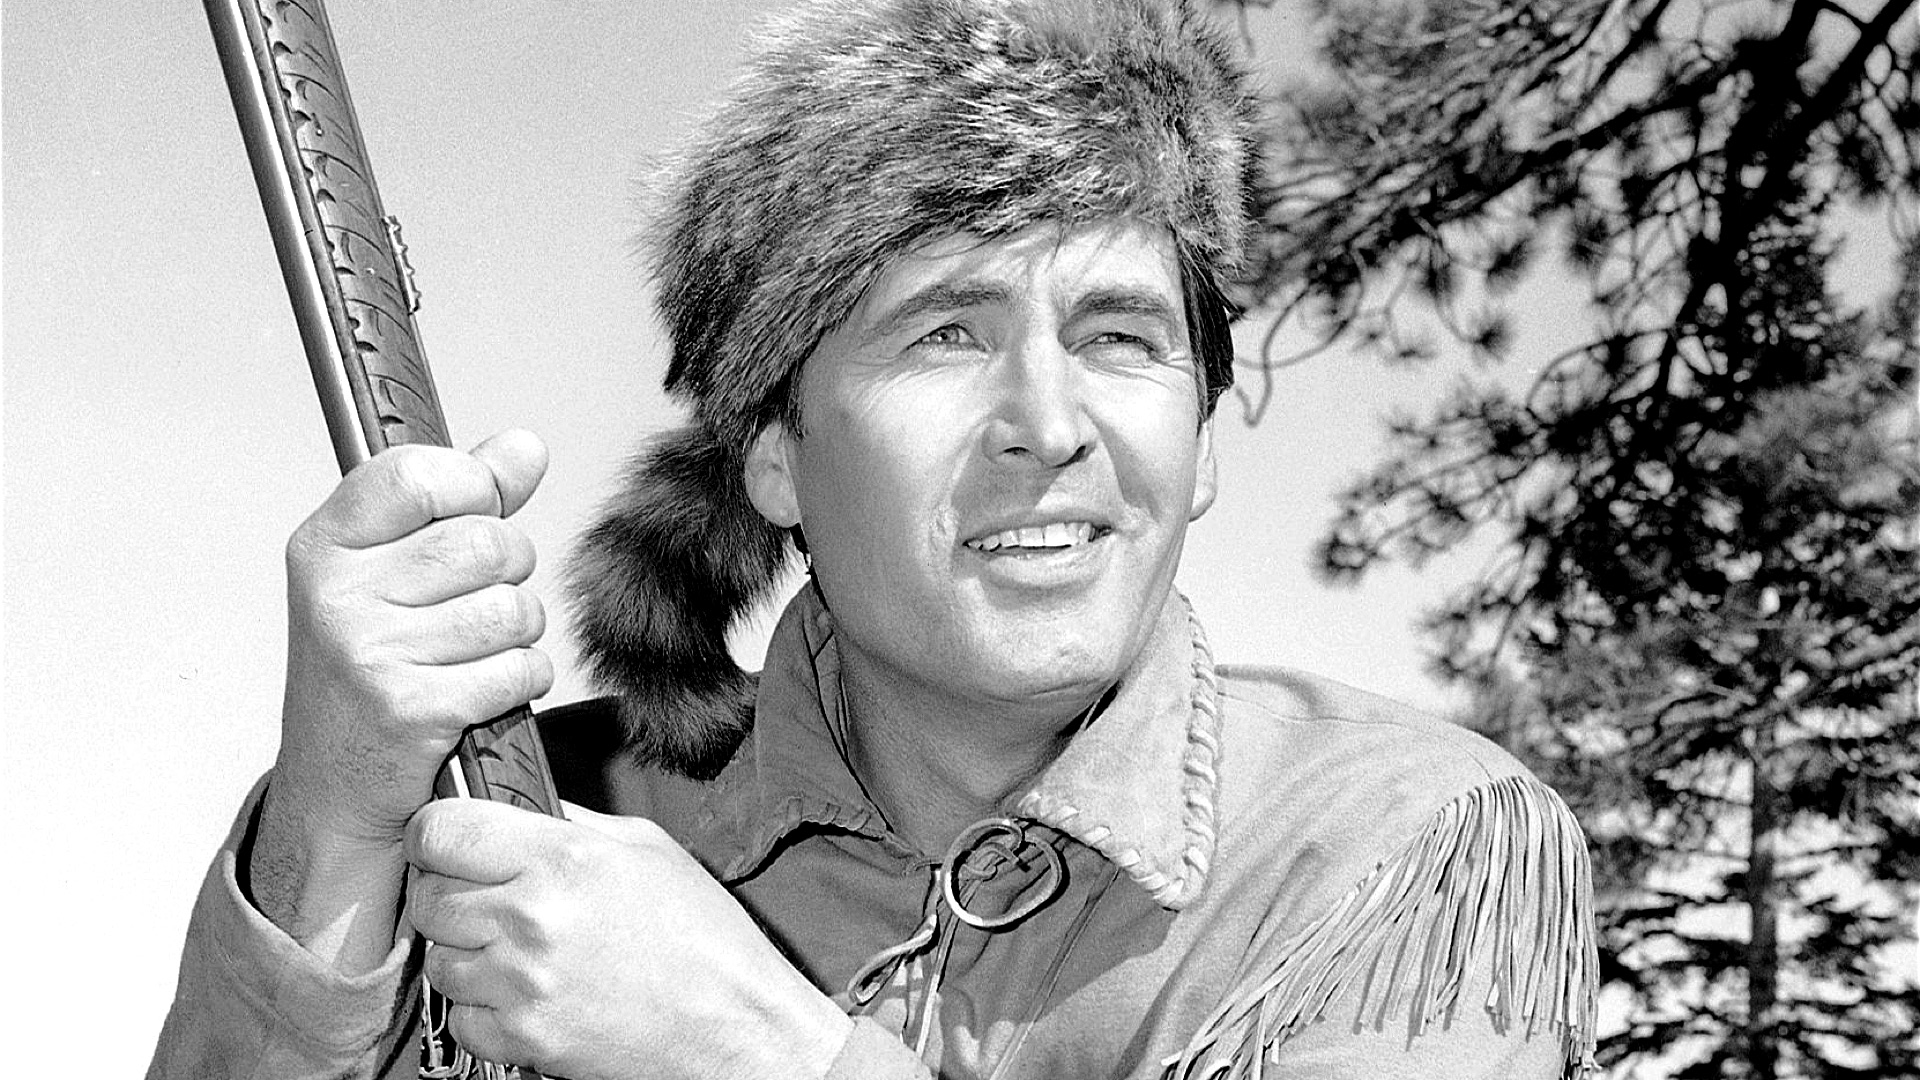 daniel boone episode 10 points Flashing back to 1775, daniel boone is blazing his wilderness road through the cumberland gap in the appalachian mountains with boone is a wagon train of settlers, and on the way he meets and befriends mingo and rebecca.